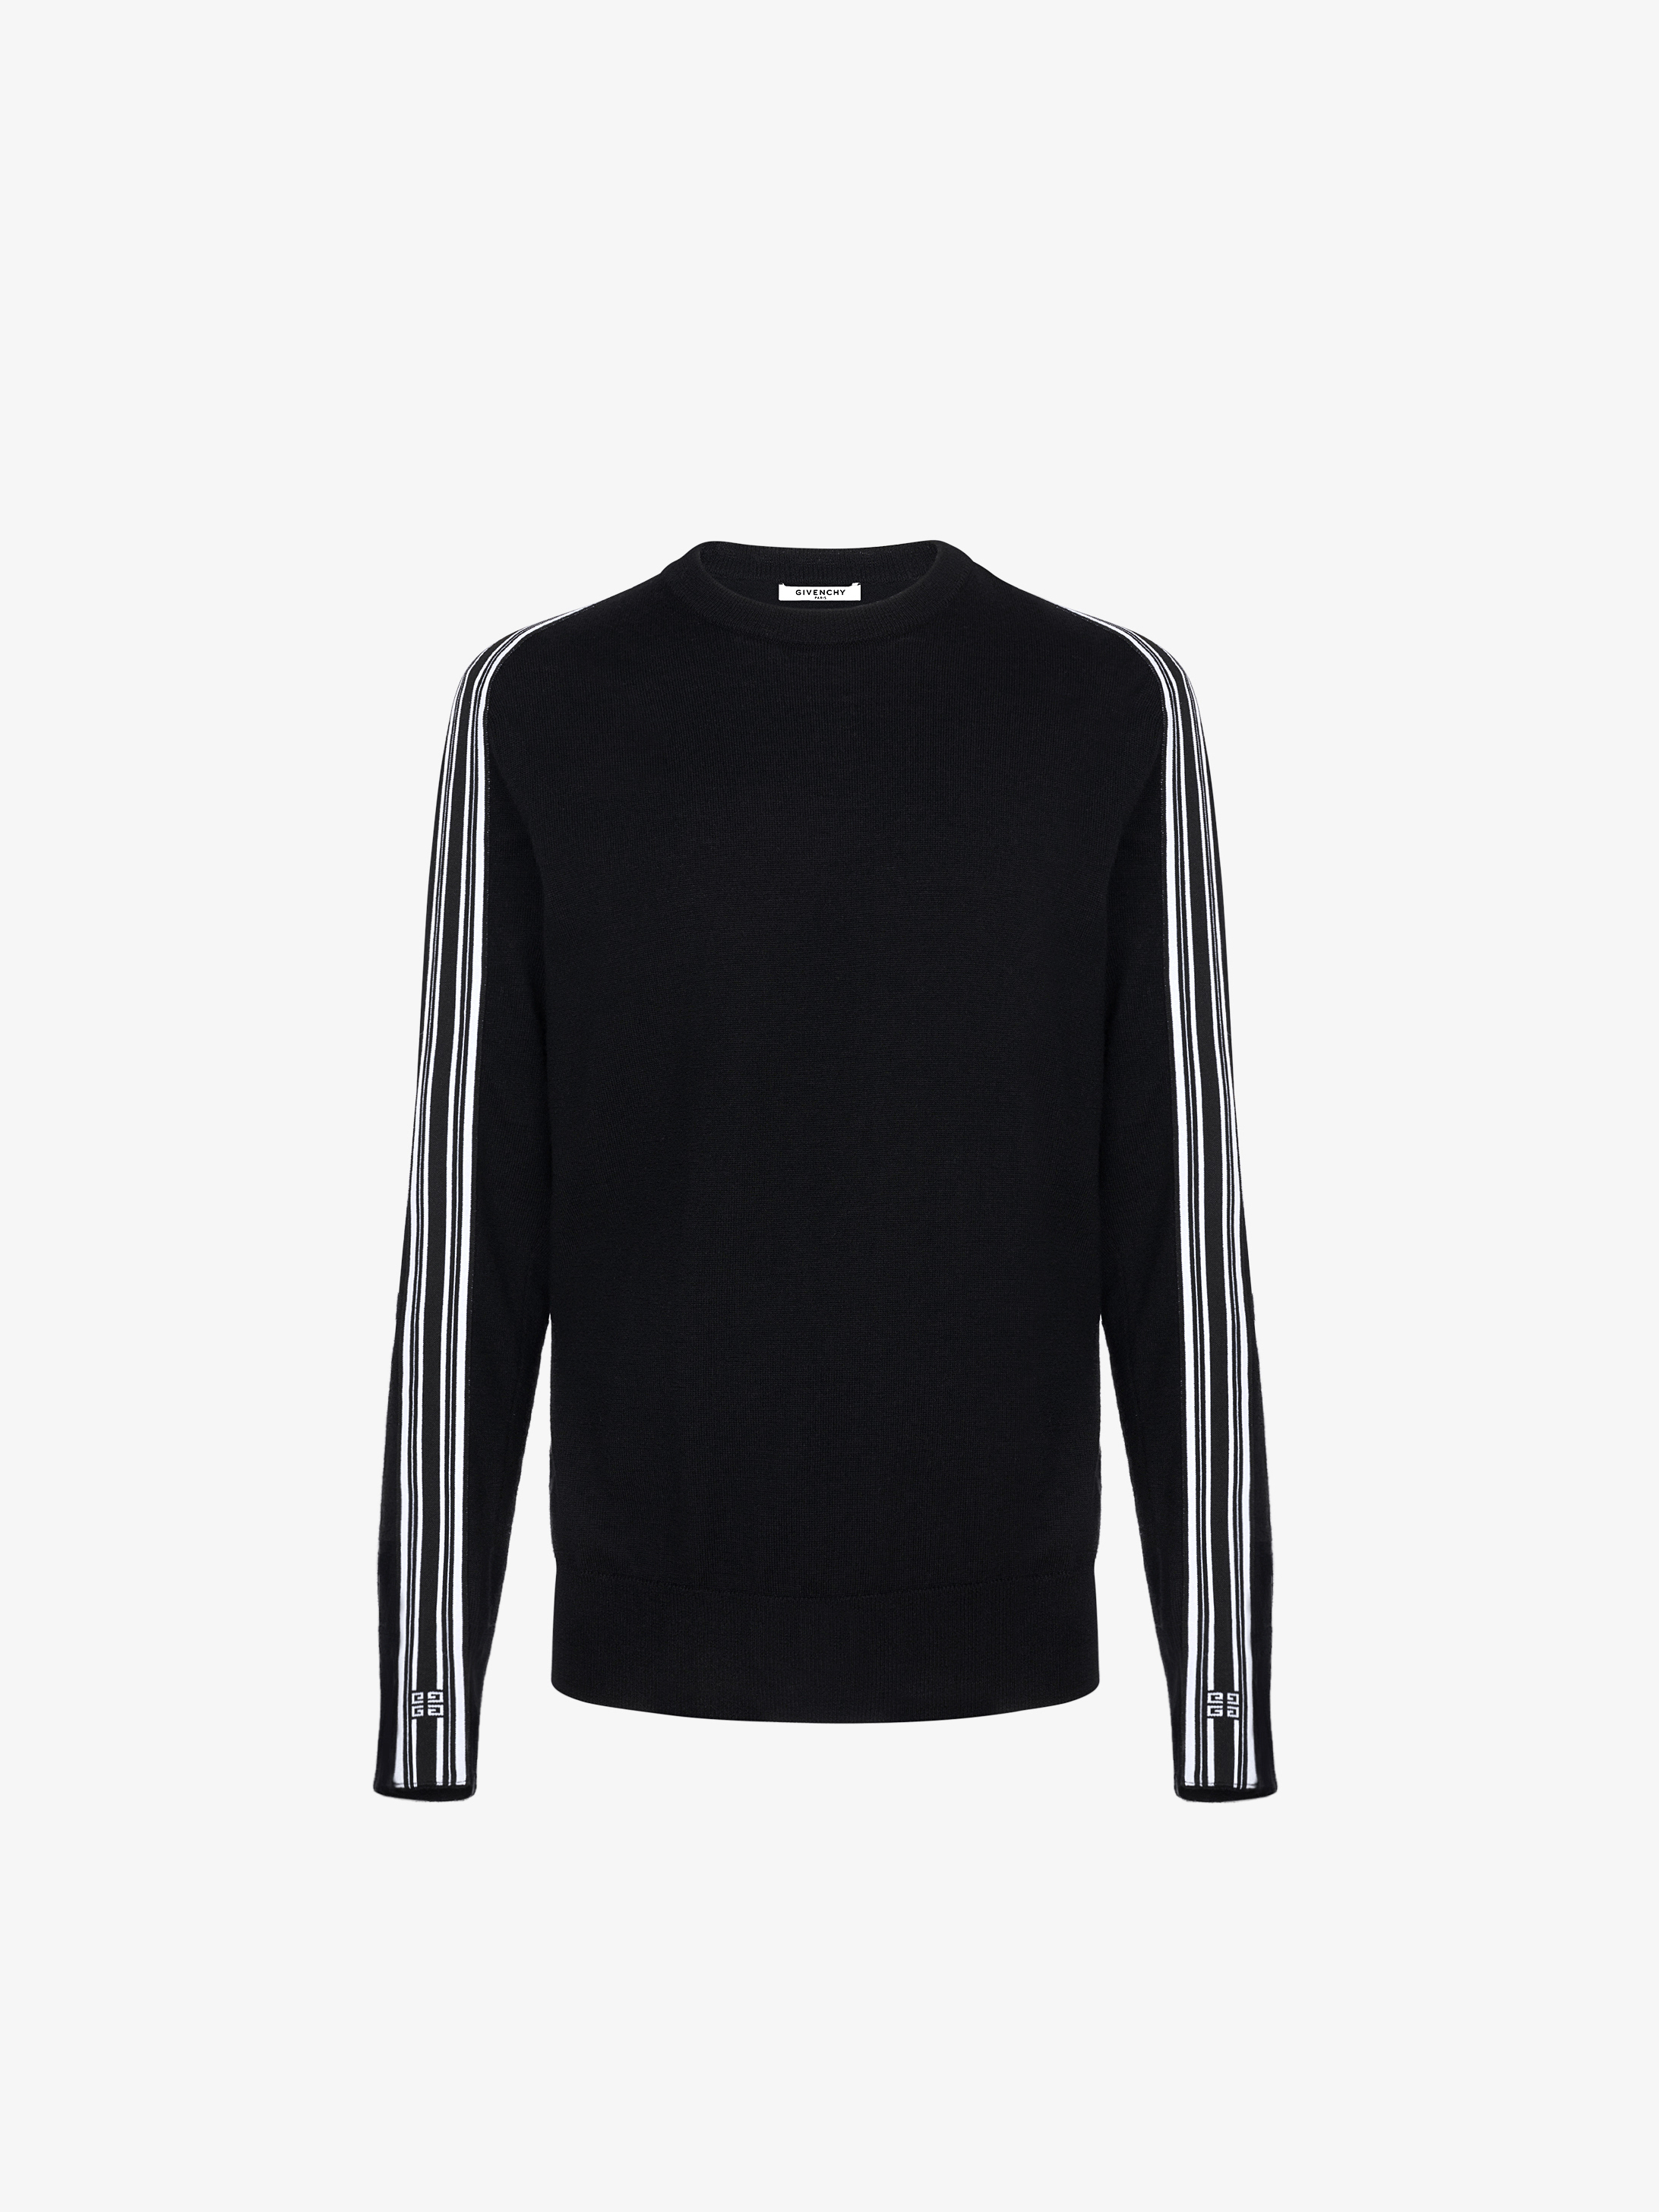 4G contrasting stripes sweater in wool